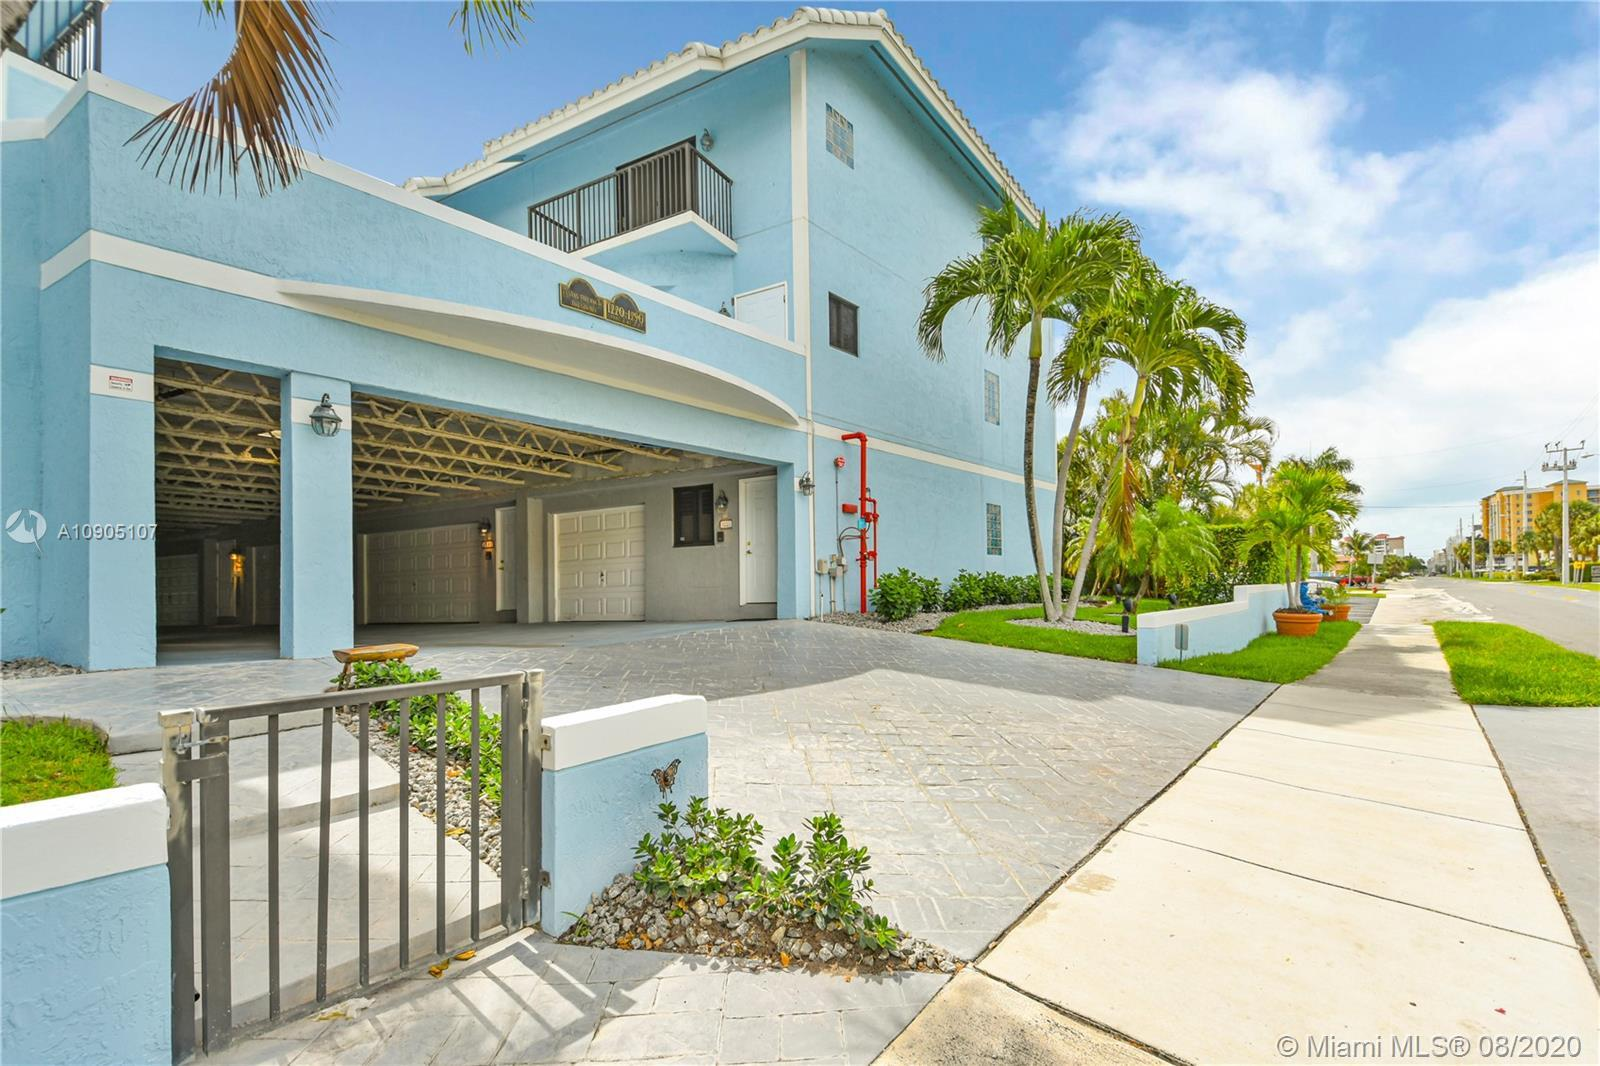 Fabulous tri-level town home with beach and intracoastal views from nearly every window. Large corne